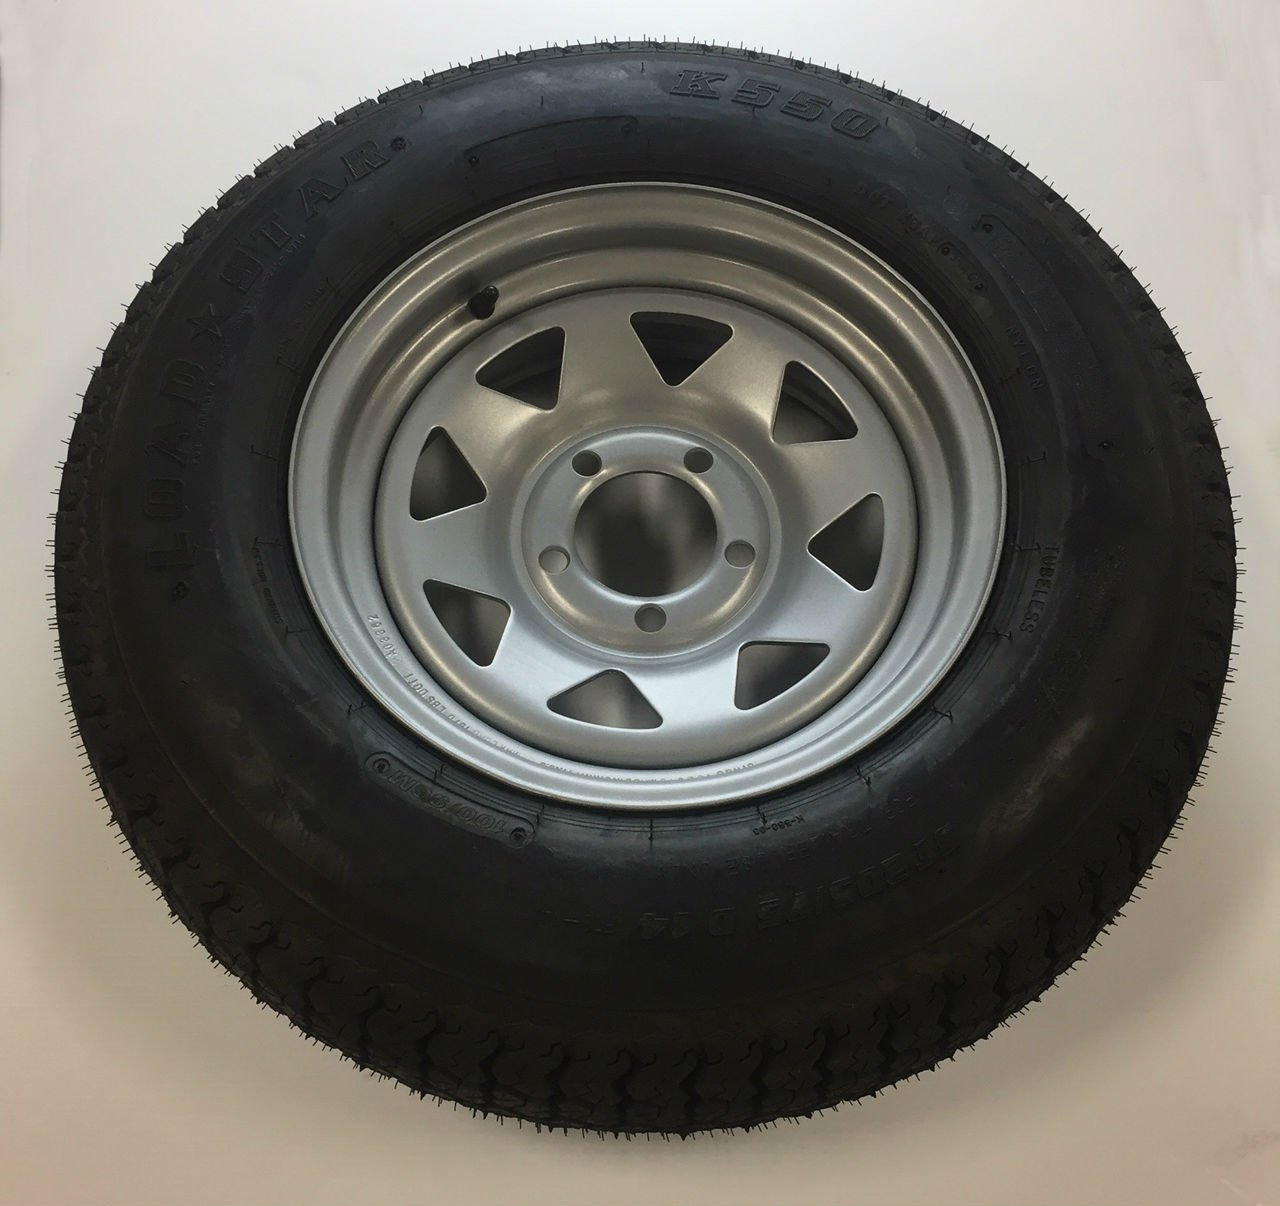 ST205/75 D14 Triton 06672 Class C Trailer Tire by Triton